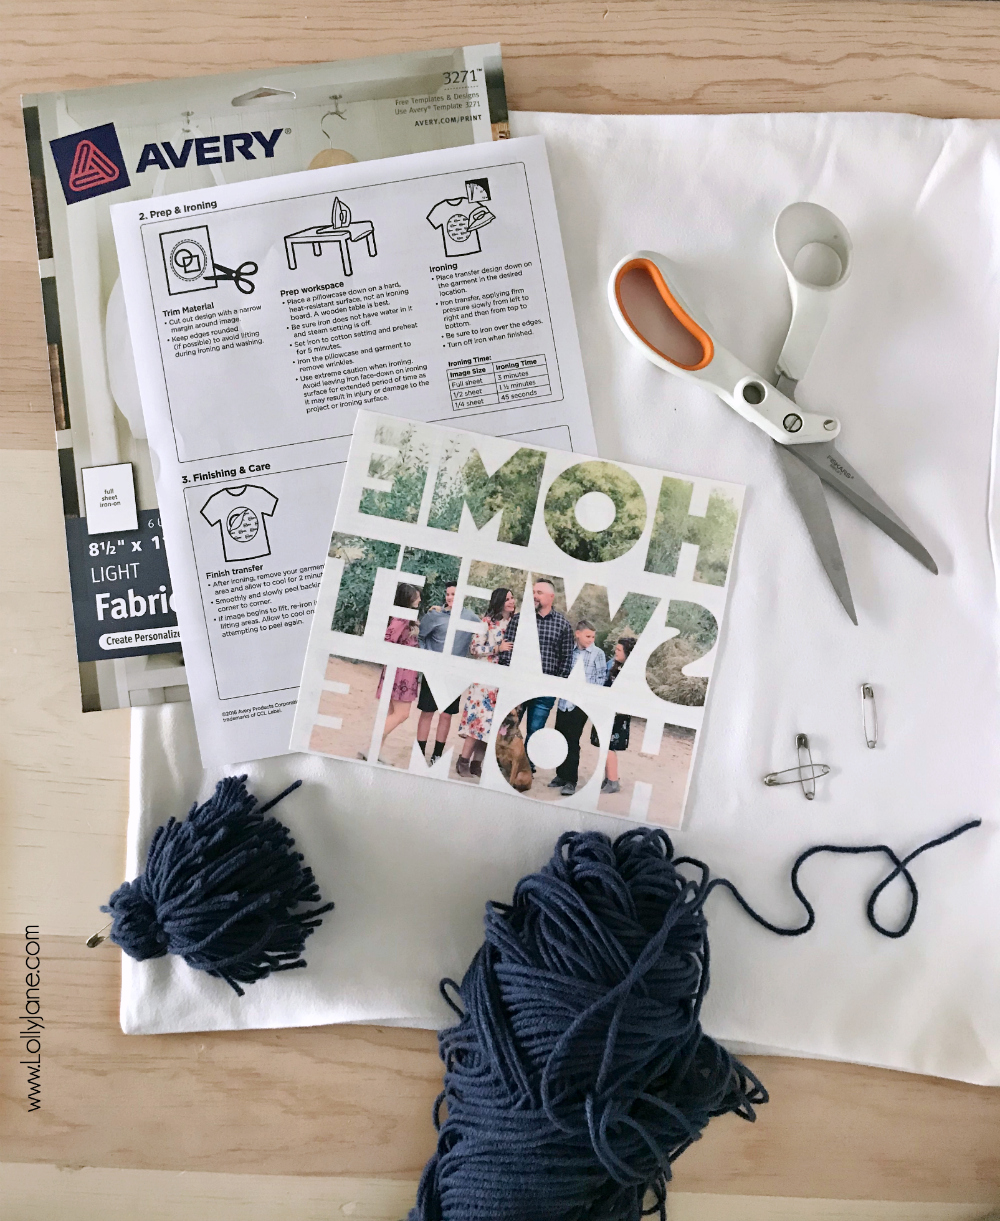 EASY Photo Transfer Tutorial! Make your own tshirts, pillows, or TRANSFER IMAGES onto any fabric in just a few SIMPLE steps!